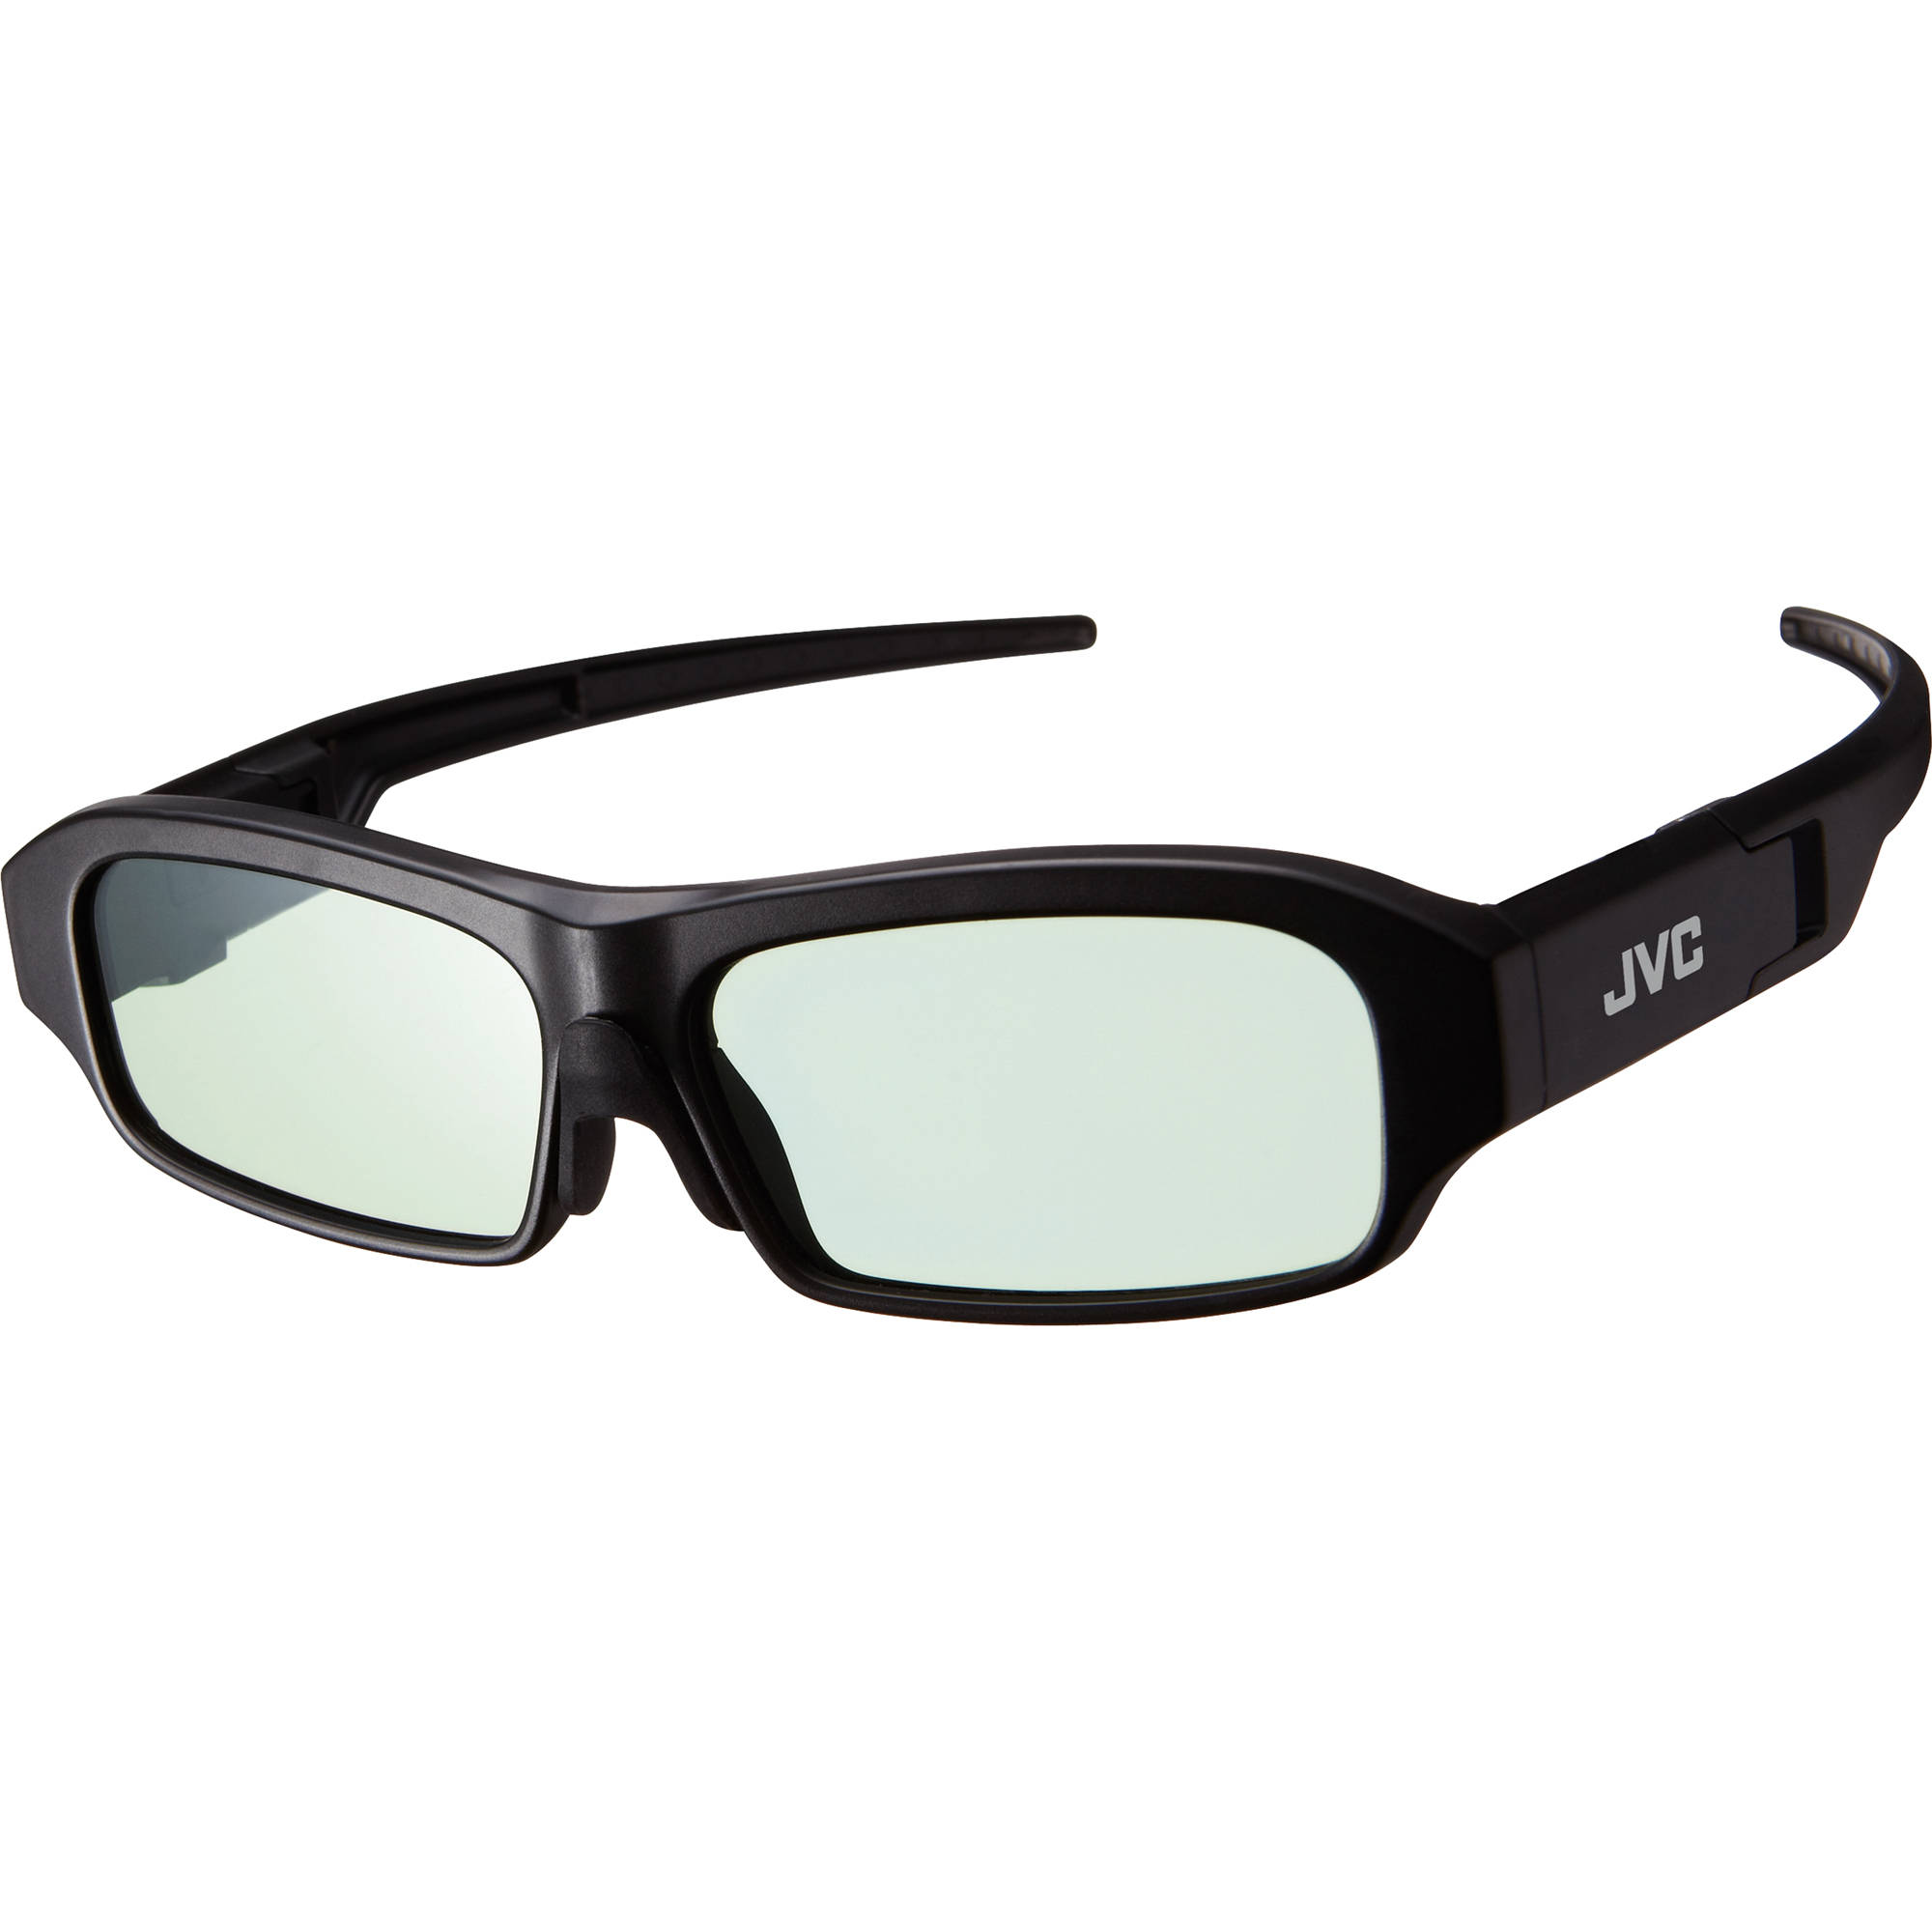 D Active Glasses For Projector